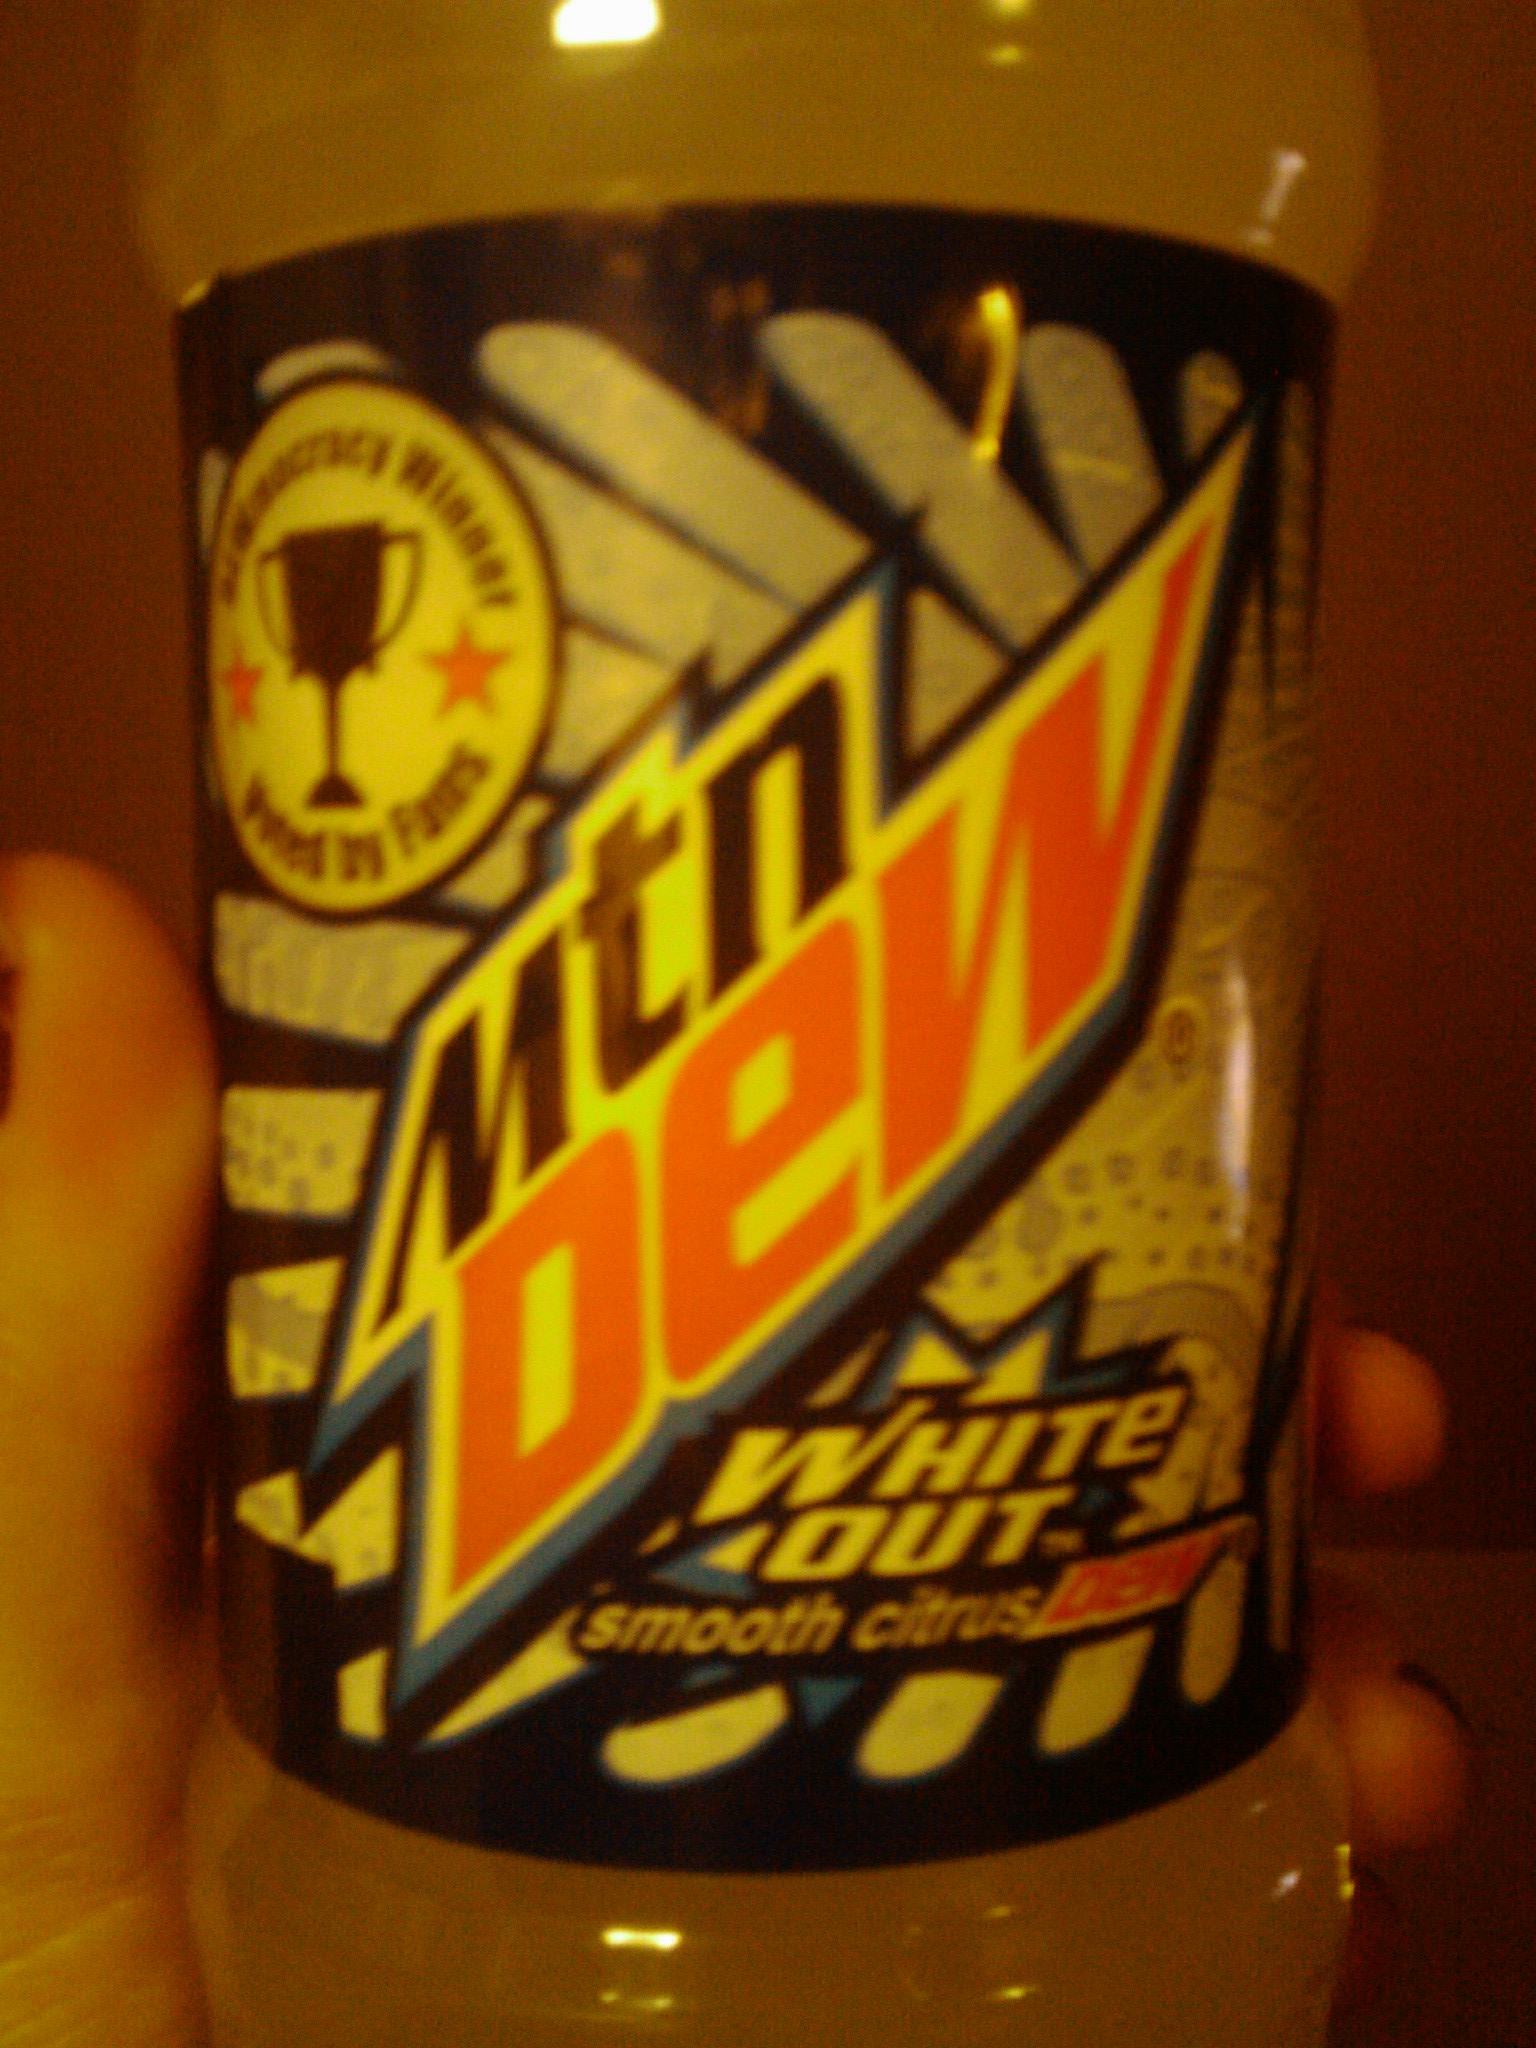 1St Ward :: mountain dew white out